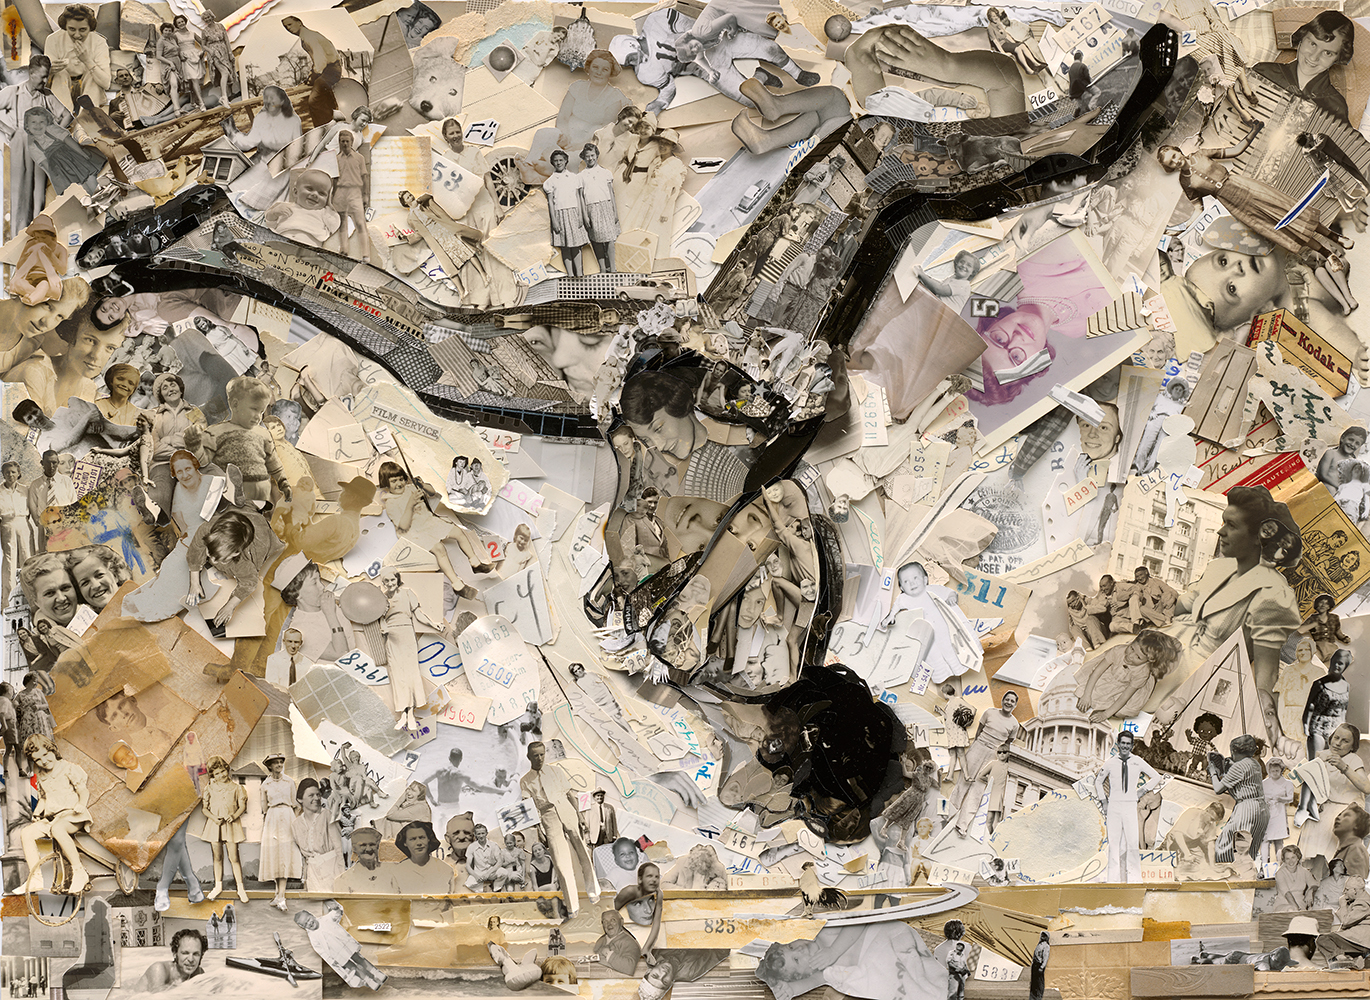 © VIK MUNIZ, Flip (Album), 2014. Courtesy of Matthew Liu Fine Arts (Shanghai)